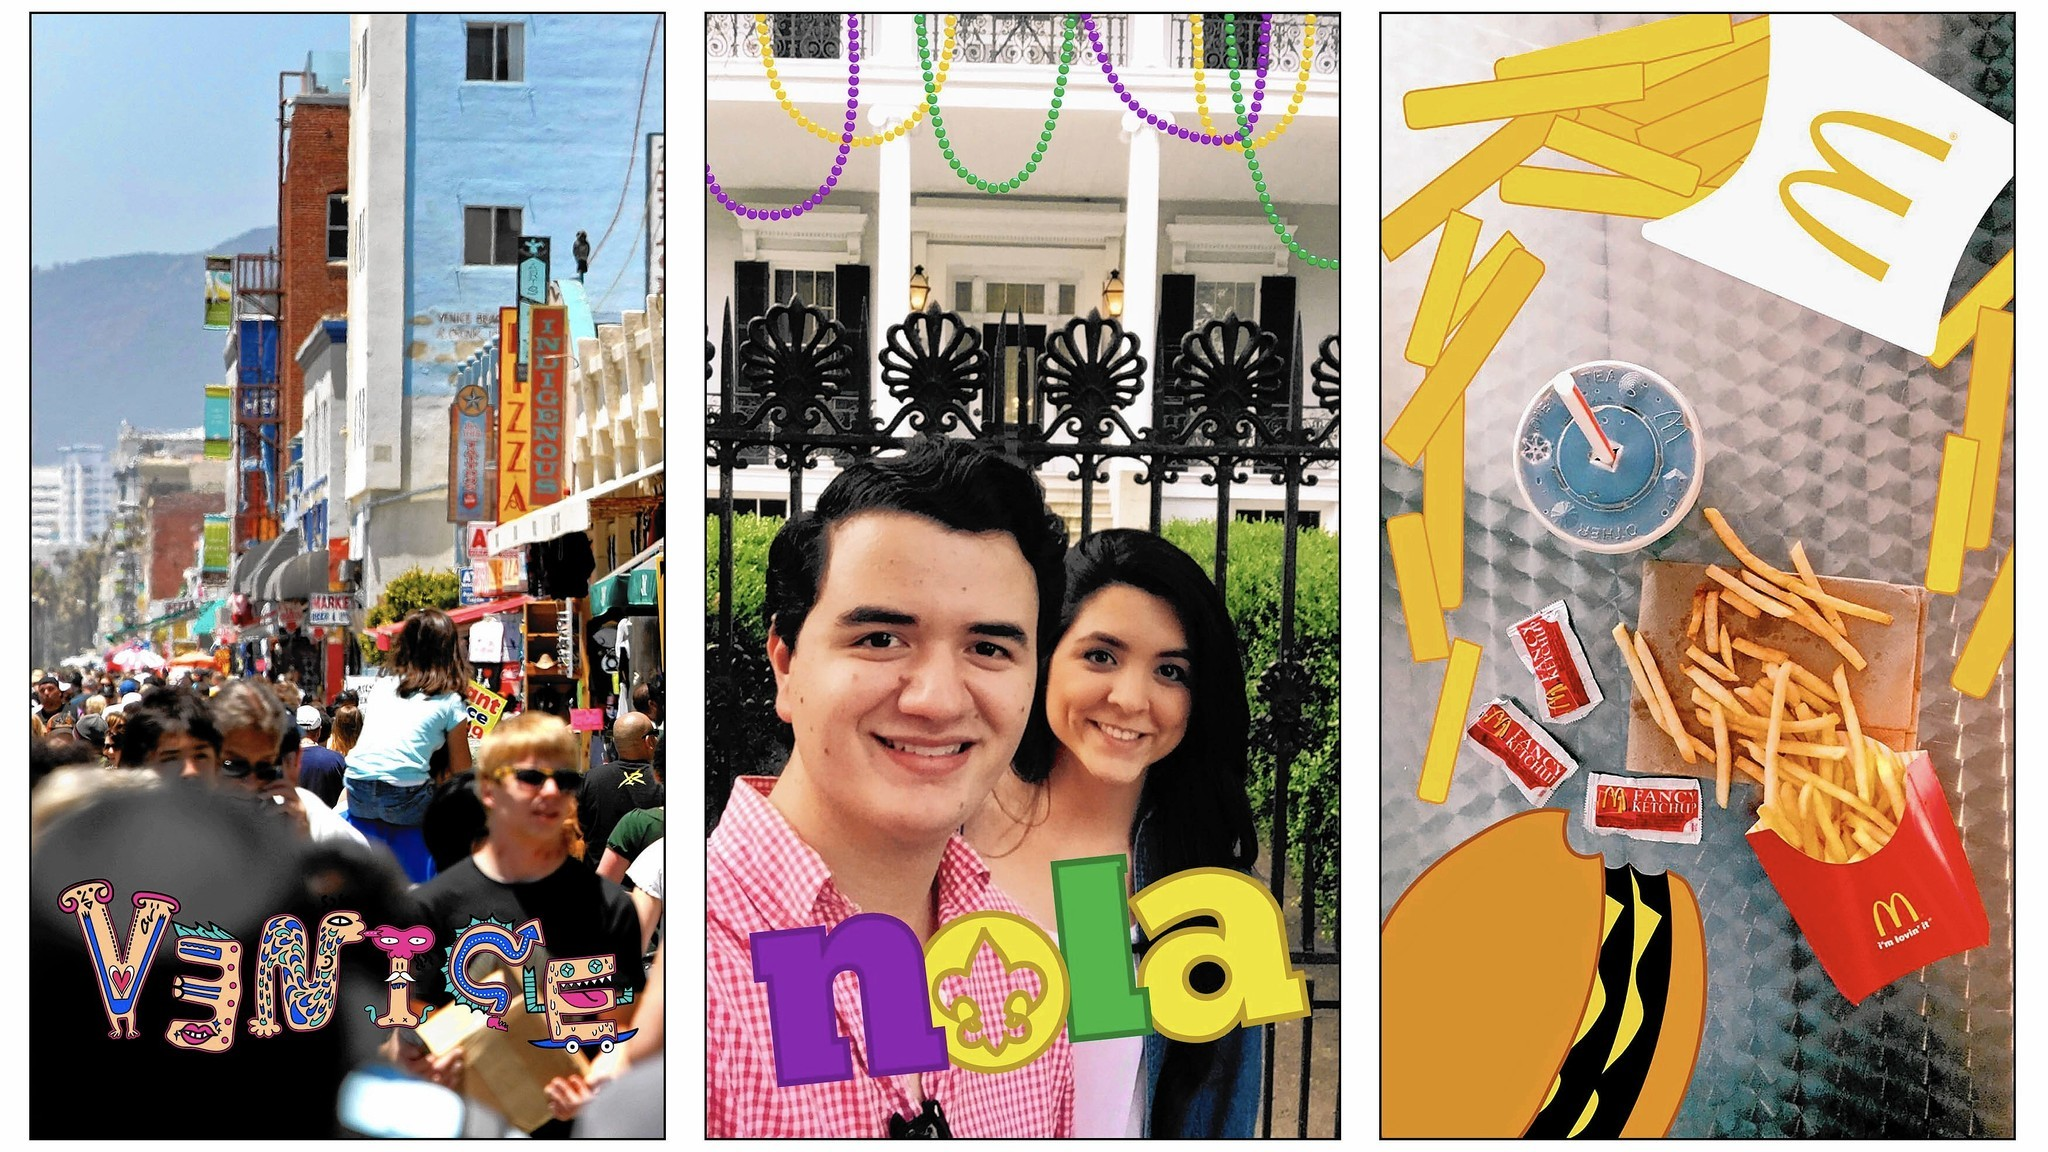 Snapchat turns geofilter digital stickers into revenue source